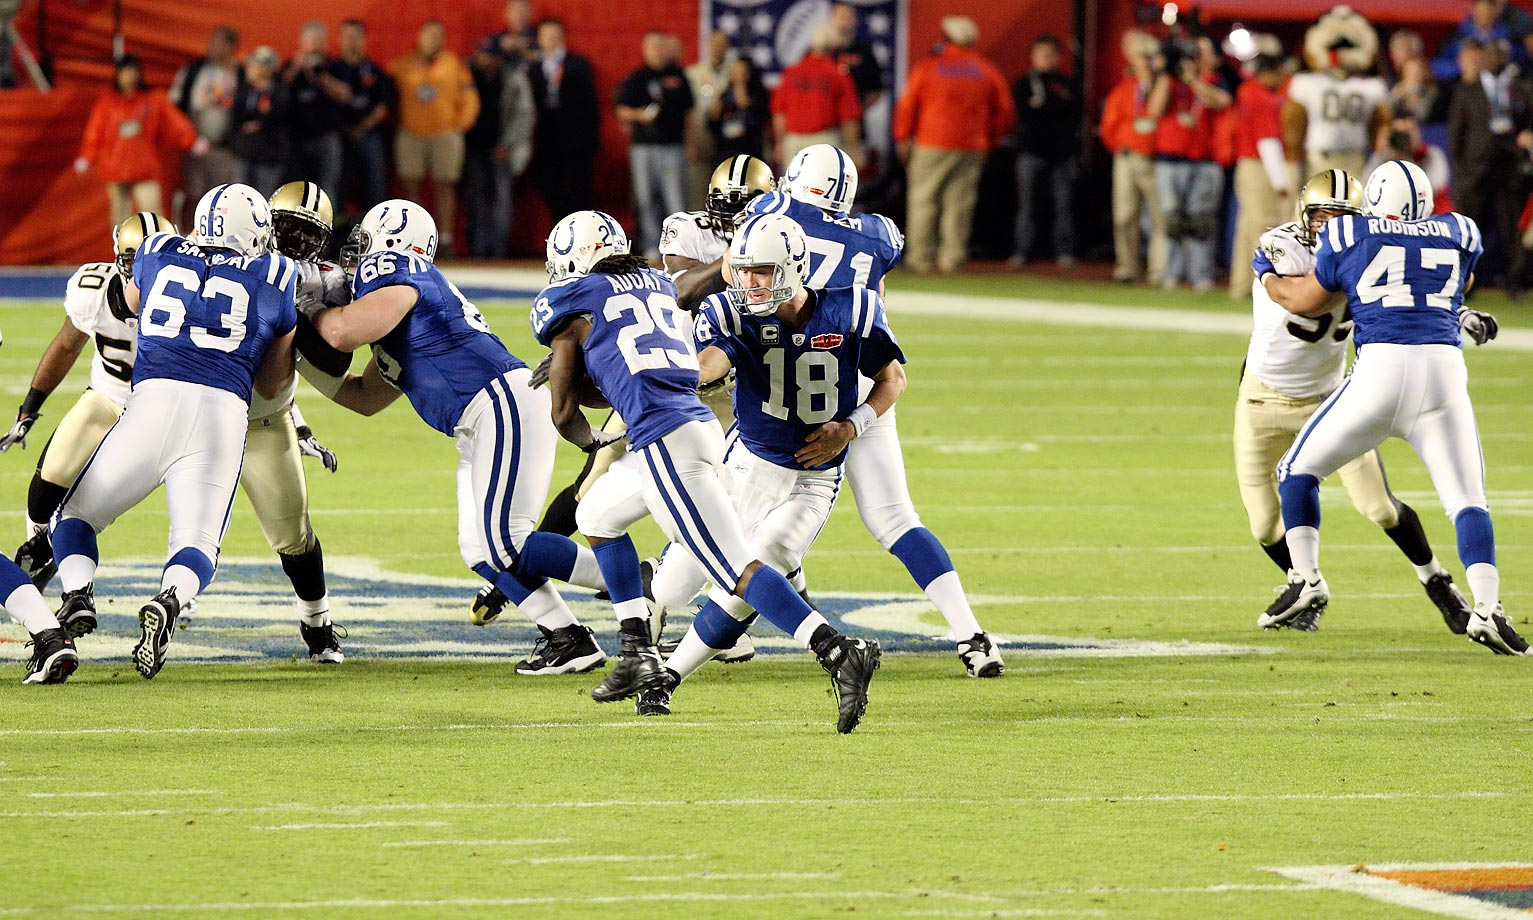 Peyton Manning and the Colts were done in by a gutsy onsides kick by New Orleans to start the second half of Super Bowl XLIV.